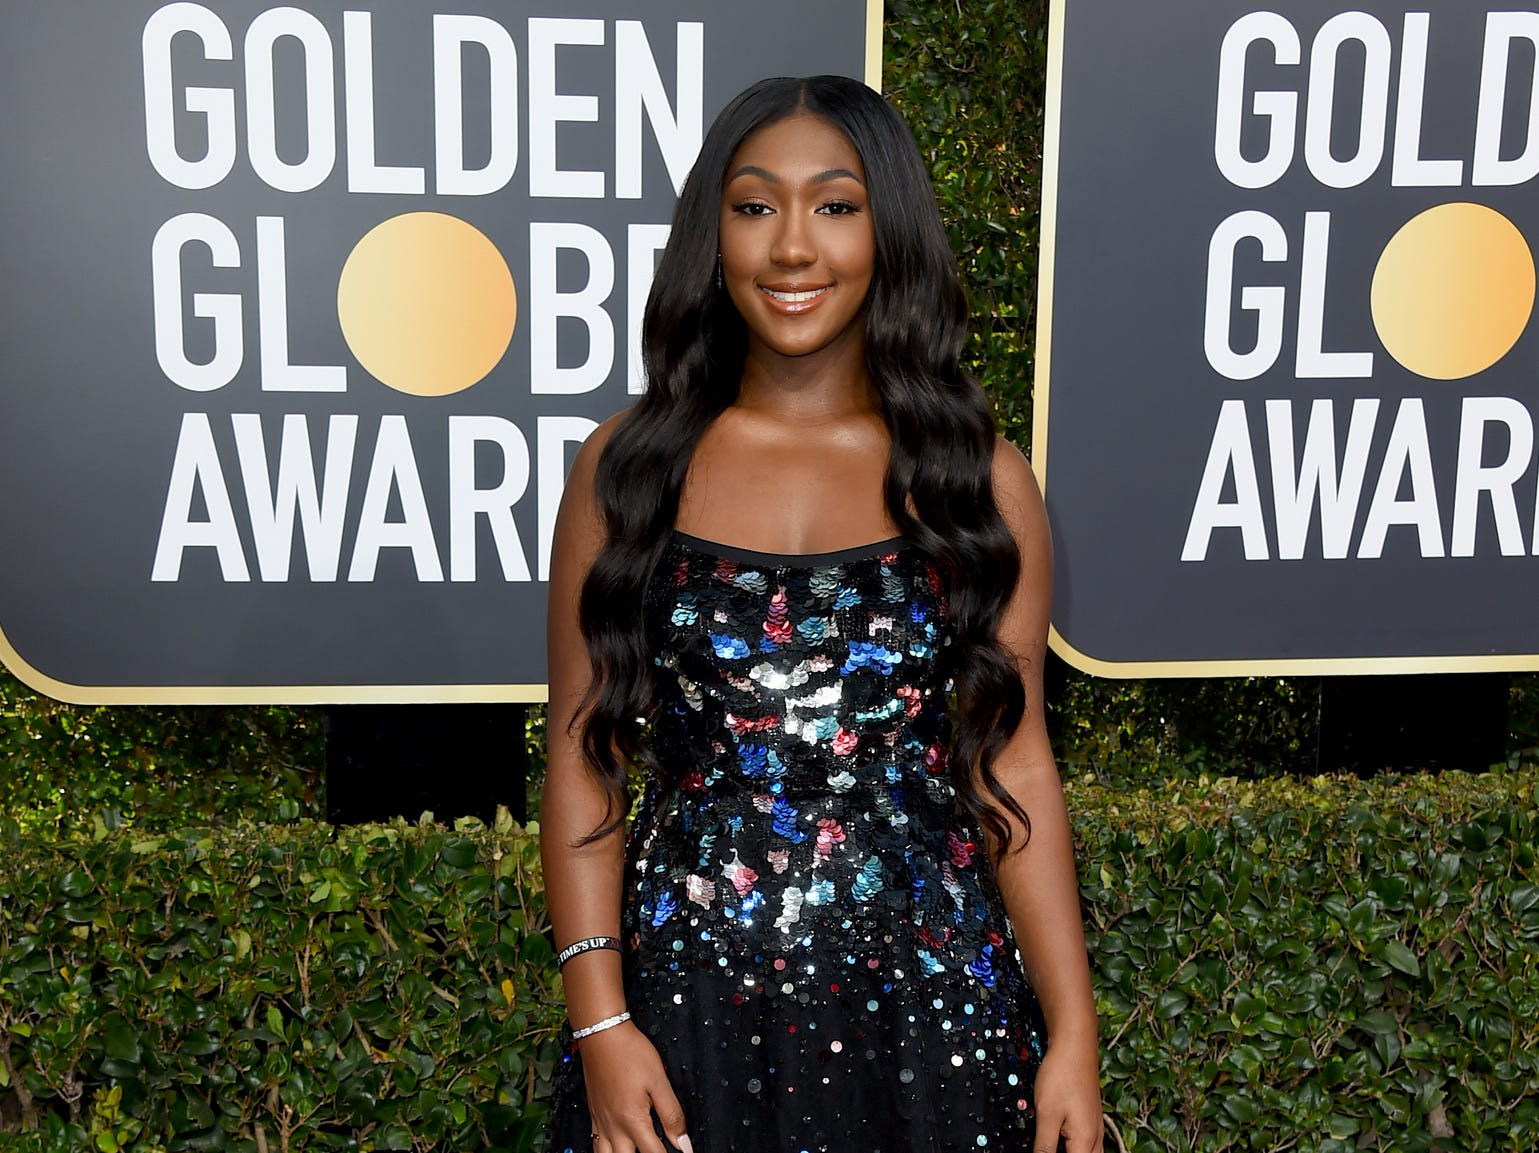 Isan Elba arrives at the 76th annual Golden Globe Awards at the Beverly Hilton Hotel on Sunday, Jan. 6, 2019, in Beverly Hills, Calif.